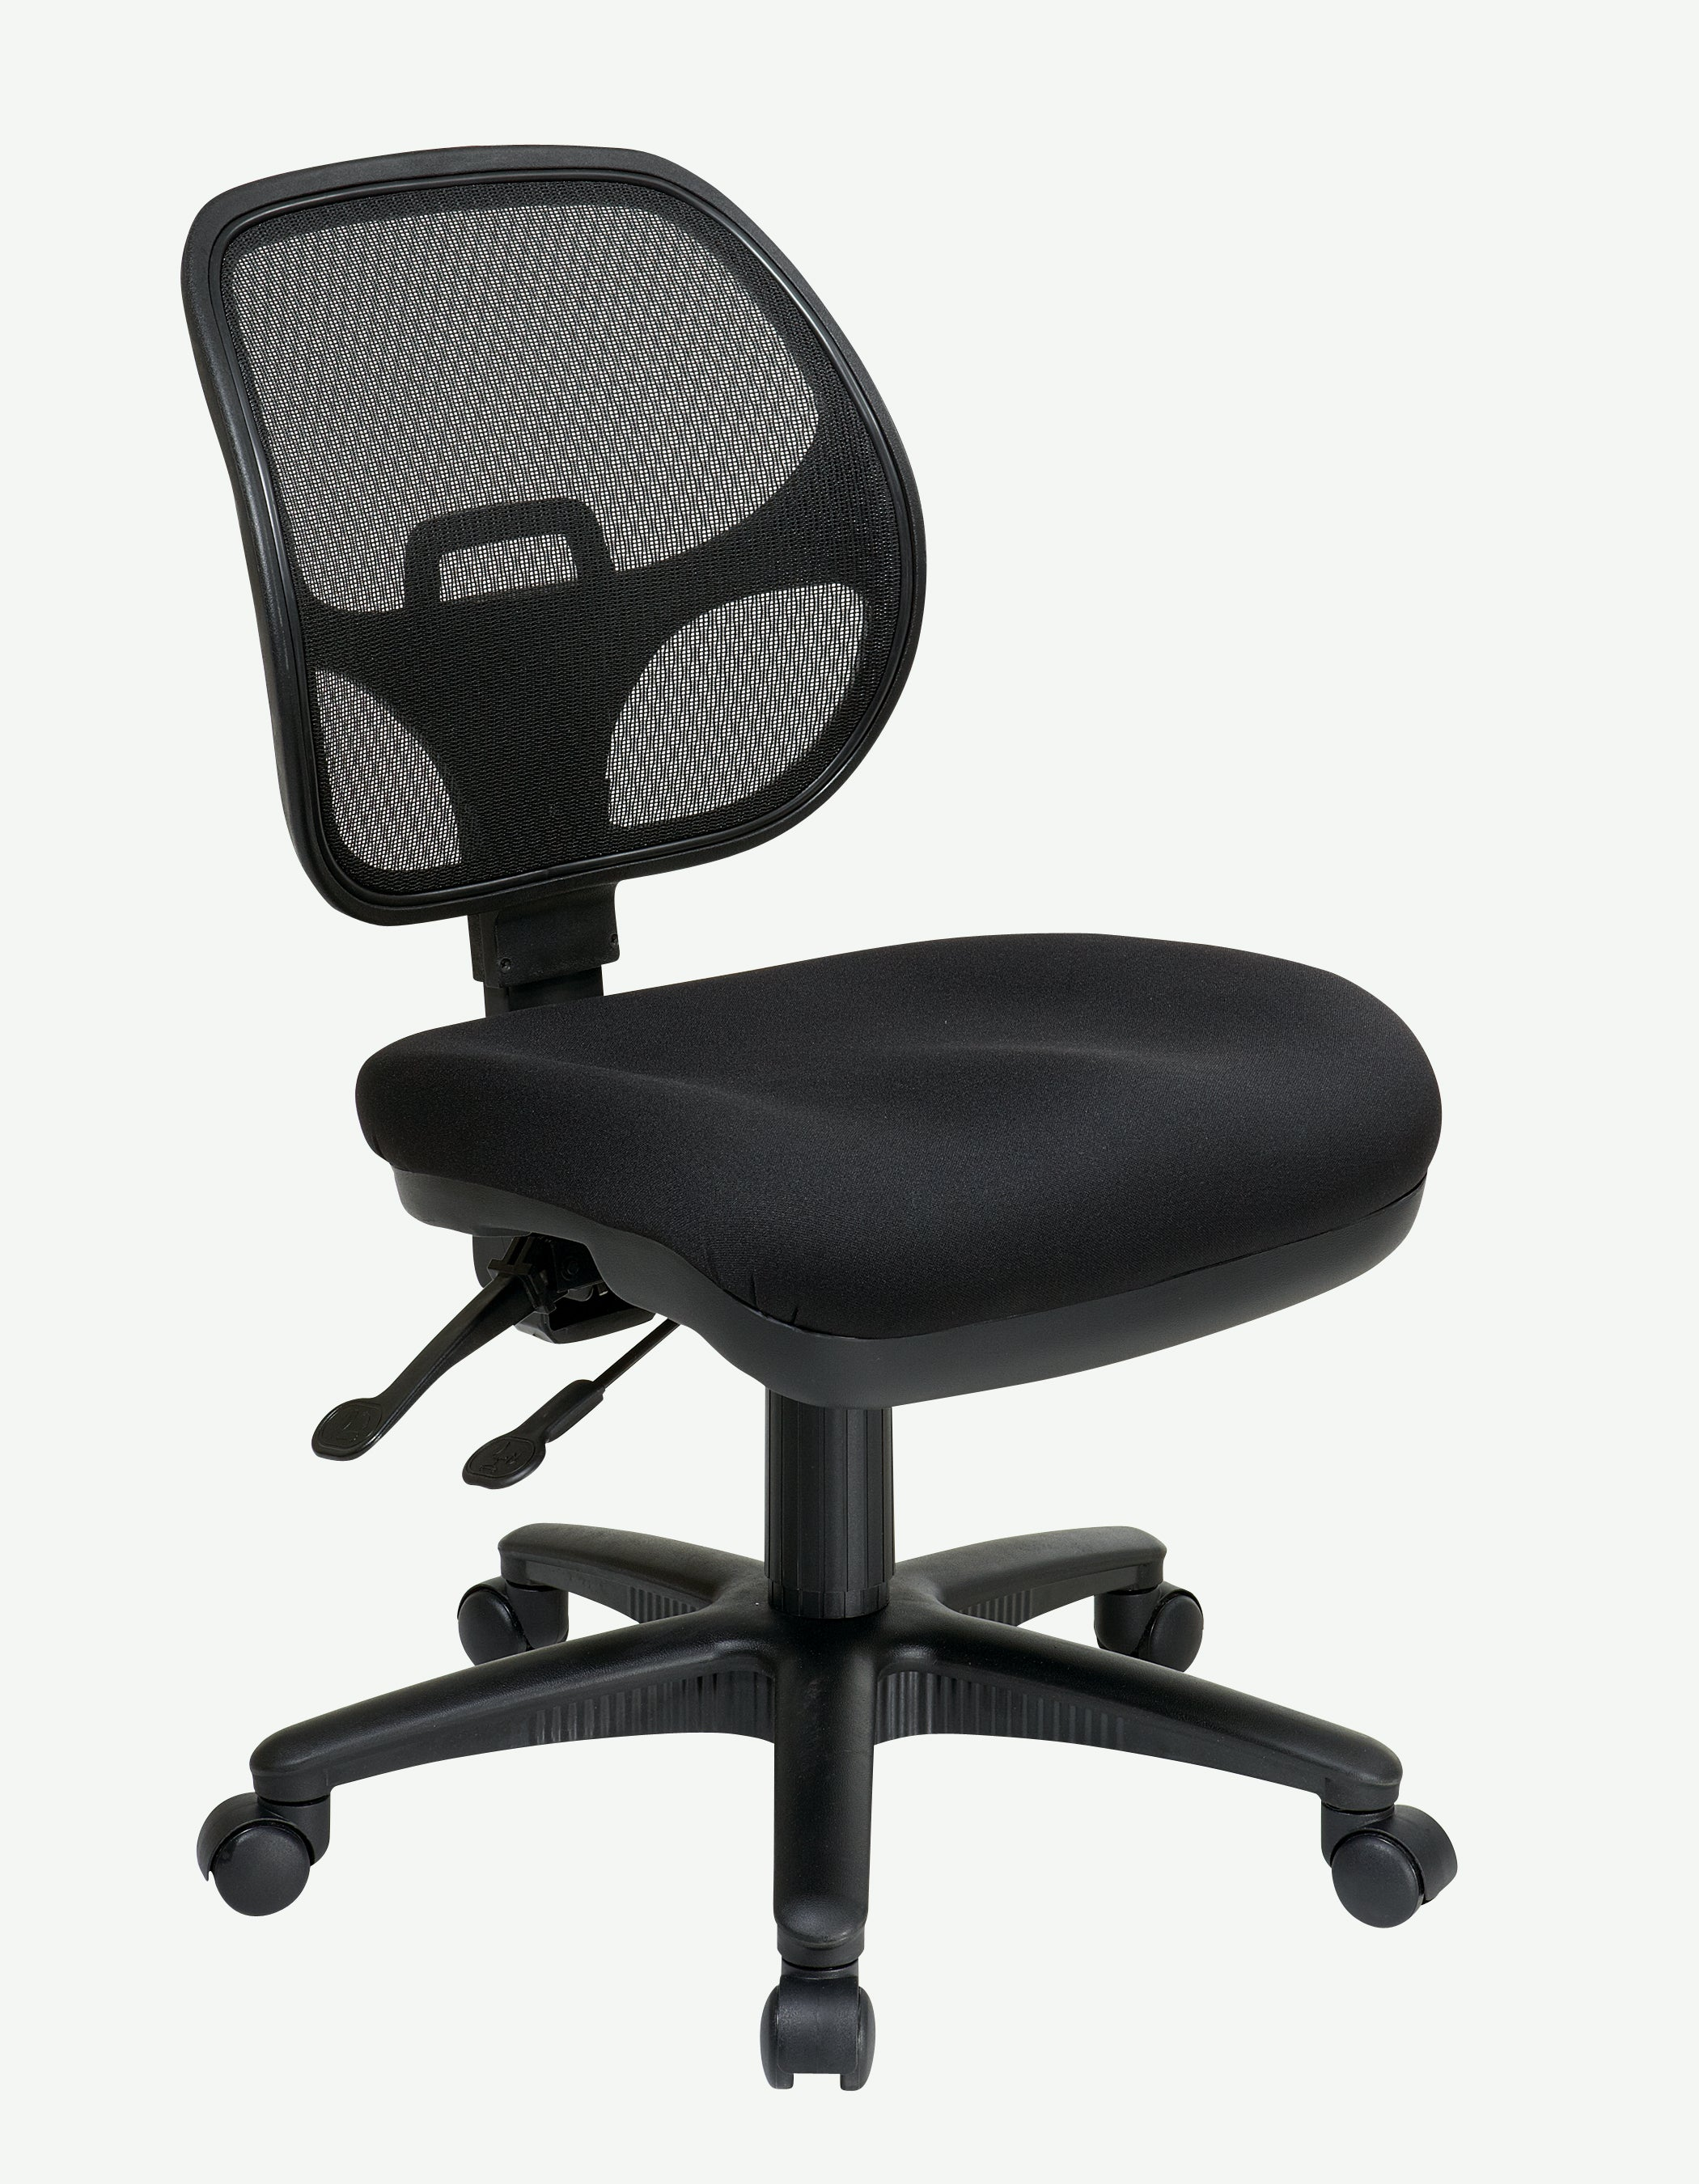 Details About Office Ergonomic Task Chair Chairs Furniture Computer